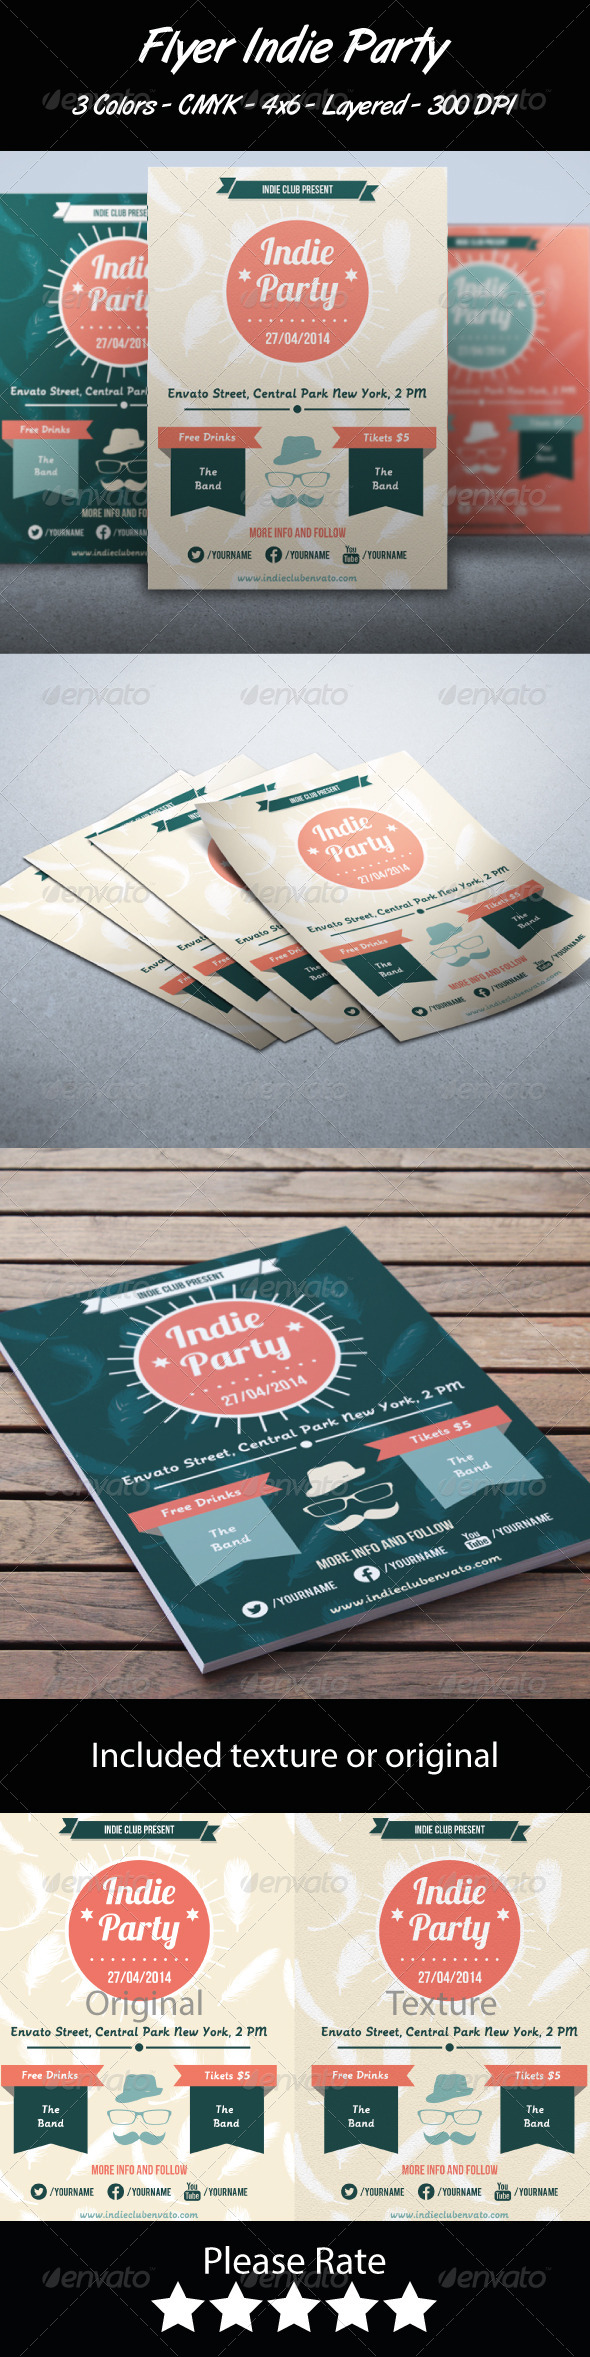 GraphicRiver Flyer Indie Party 7028830